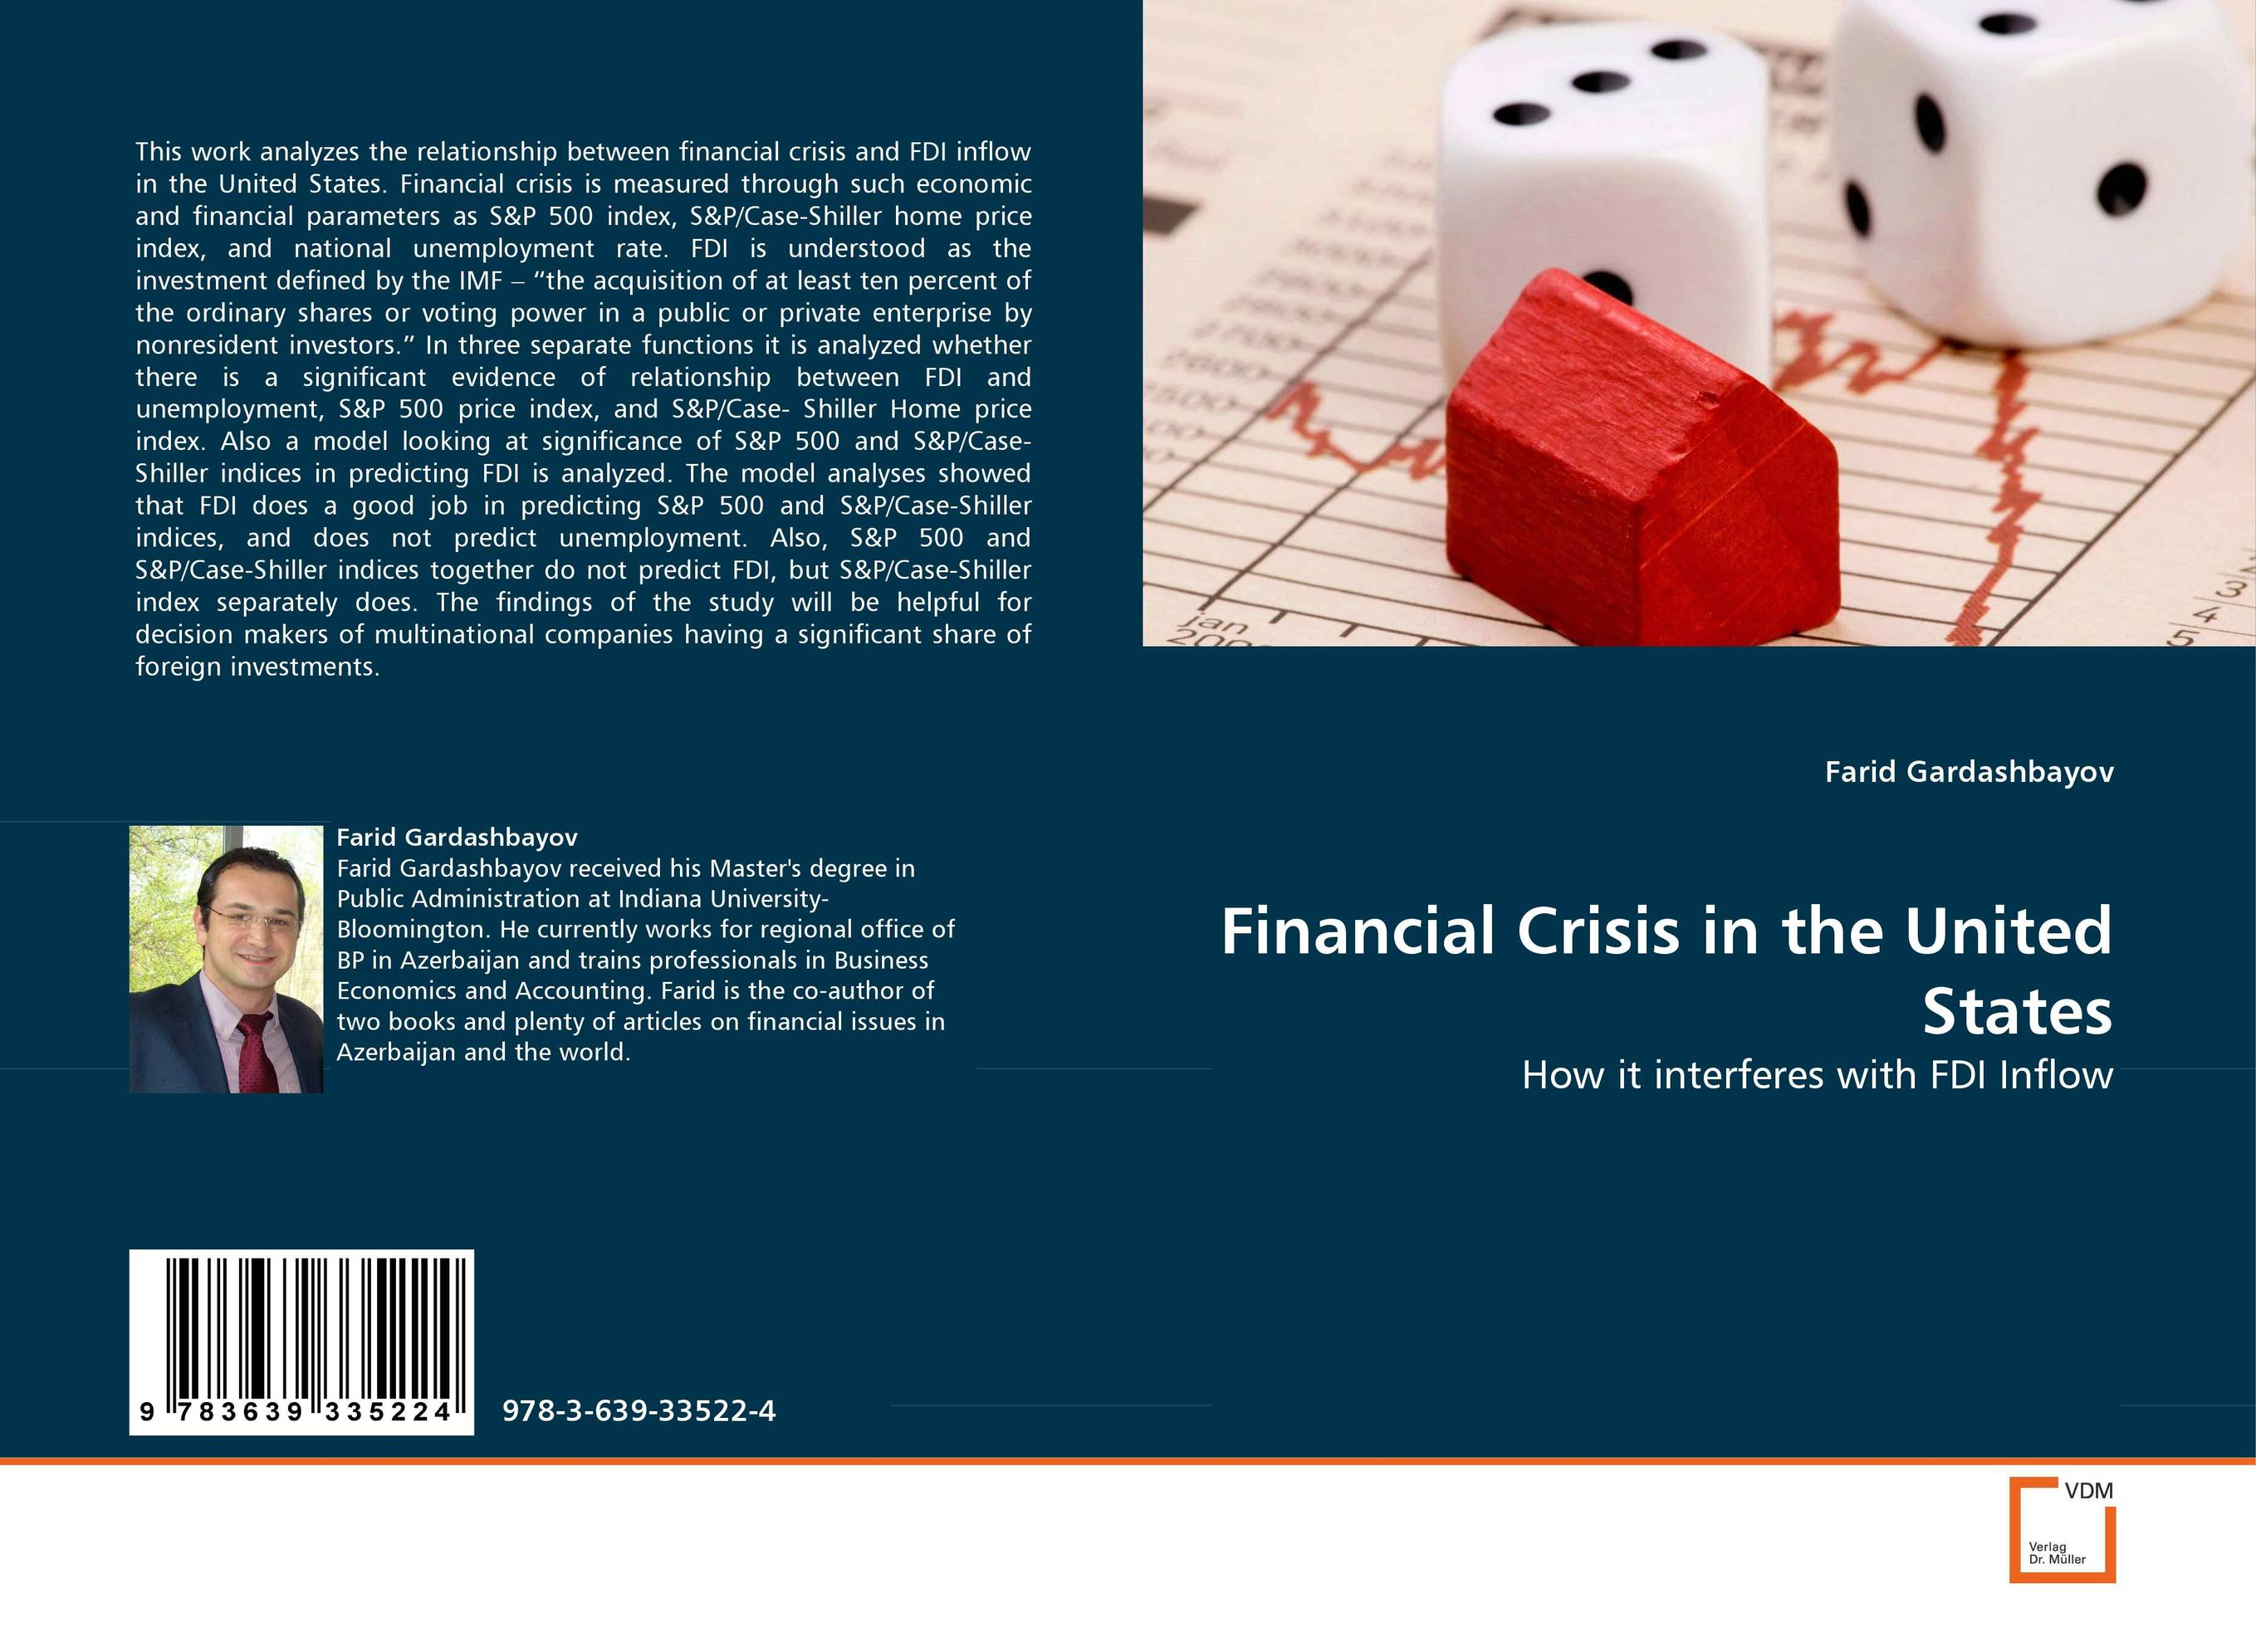 Financial Crisis in the United States simon lack a bonds are not forever the crisis facing fixed income investors